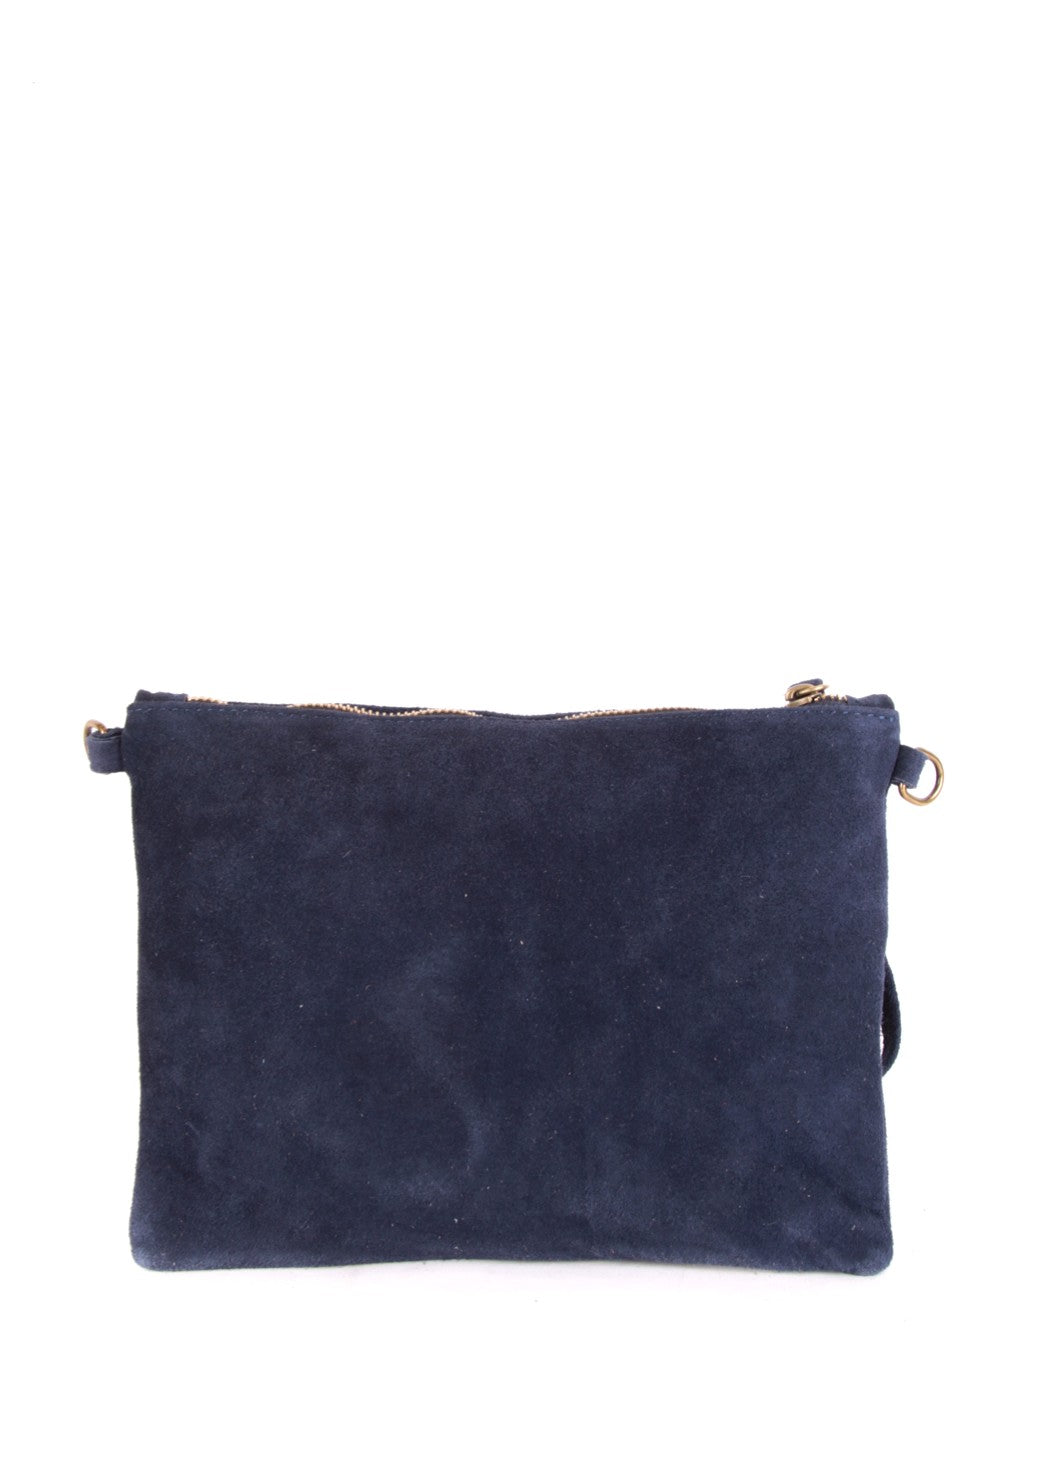 STELLA - Suede Leather Star Bag - Blue